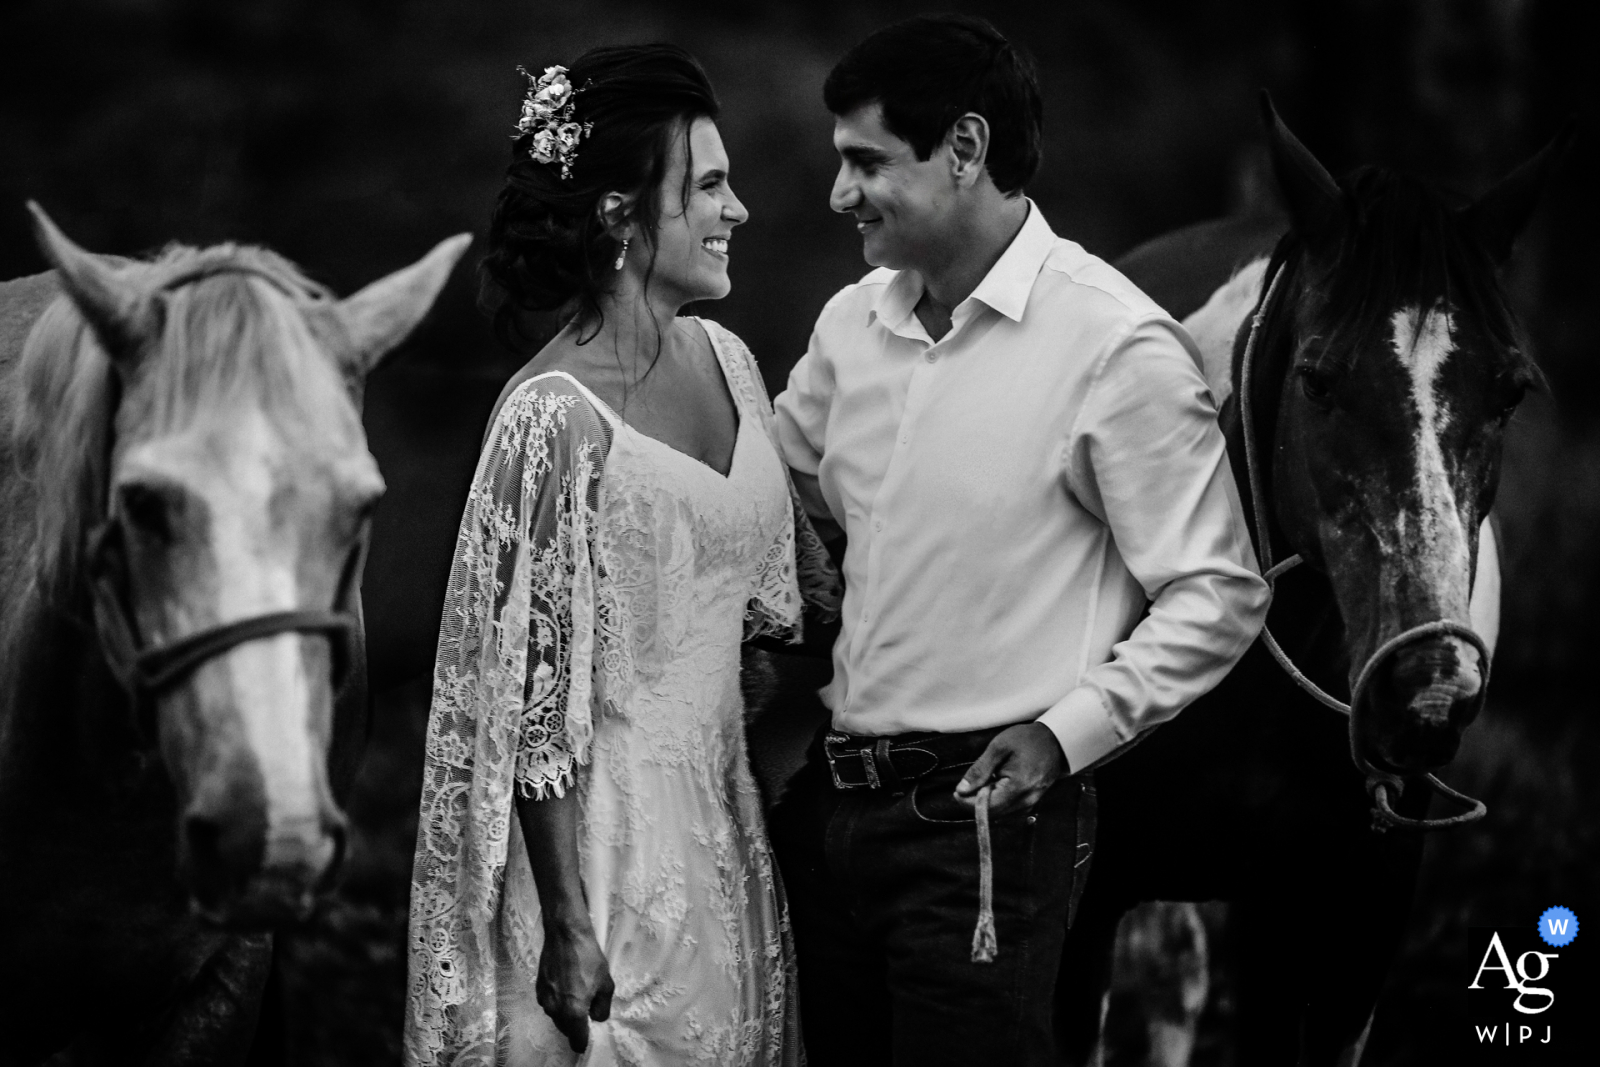 Chácara dos noivos rural wedding couple portrait in black and white with two horses